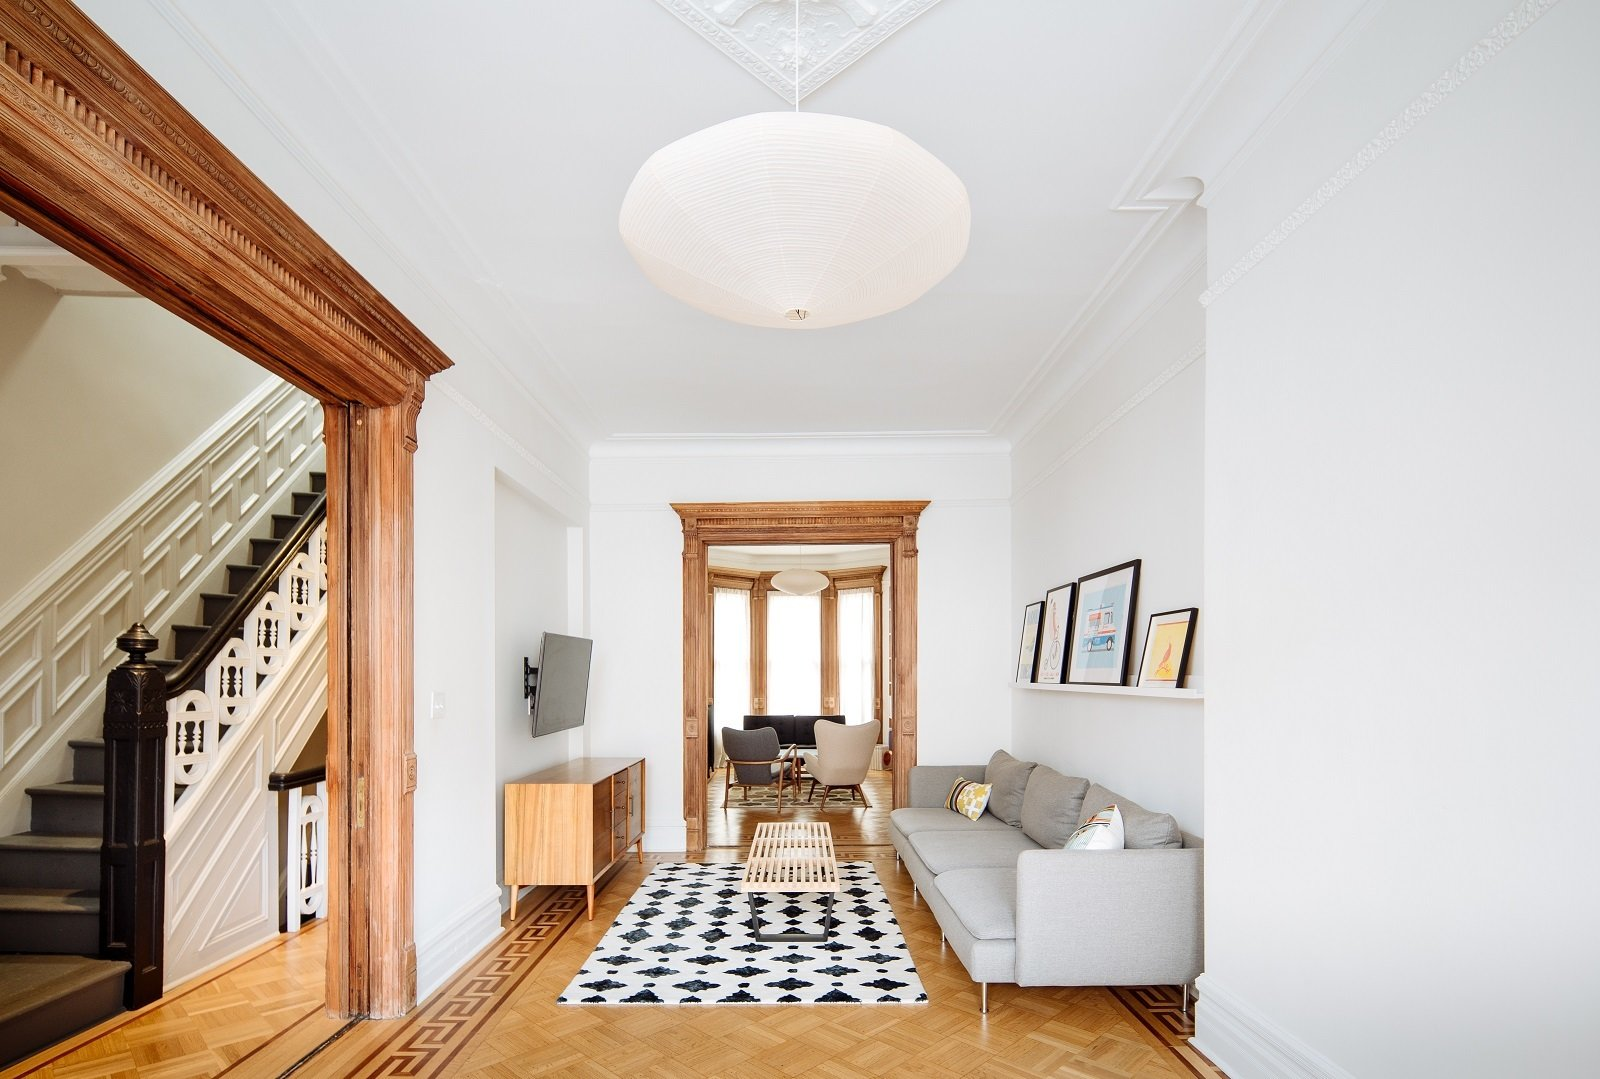 Parlour level Living Room: restored existing woodwork  bringing it back to life Tagged: Living Room, Sofa, Pendant Lighting, Console Tables, Medium Hardwood Floor, Light Hardwood Floor, and Accent Lighting.  Brooklyn Brownstone by Sonya Lee Architect llc